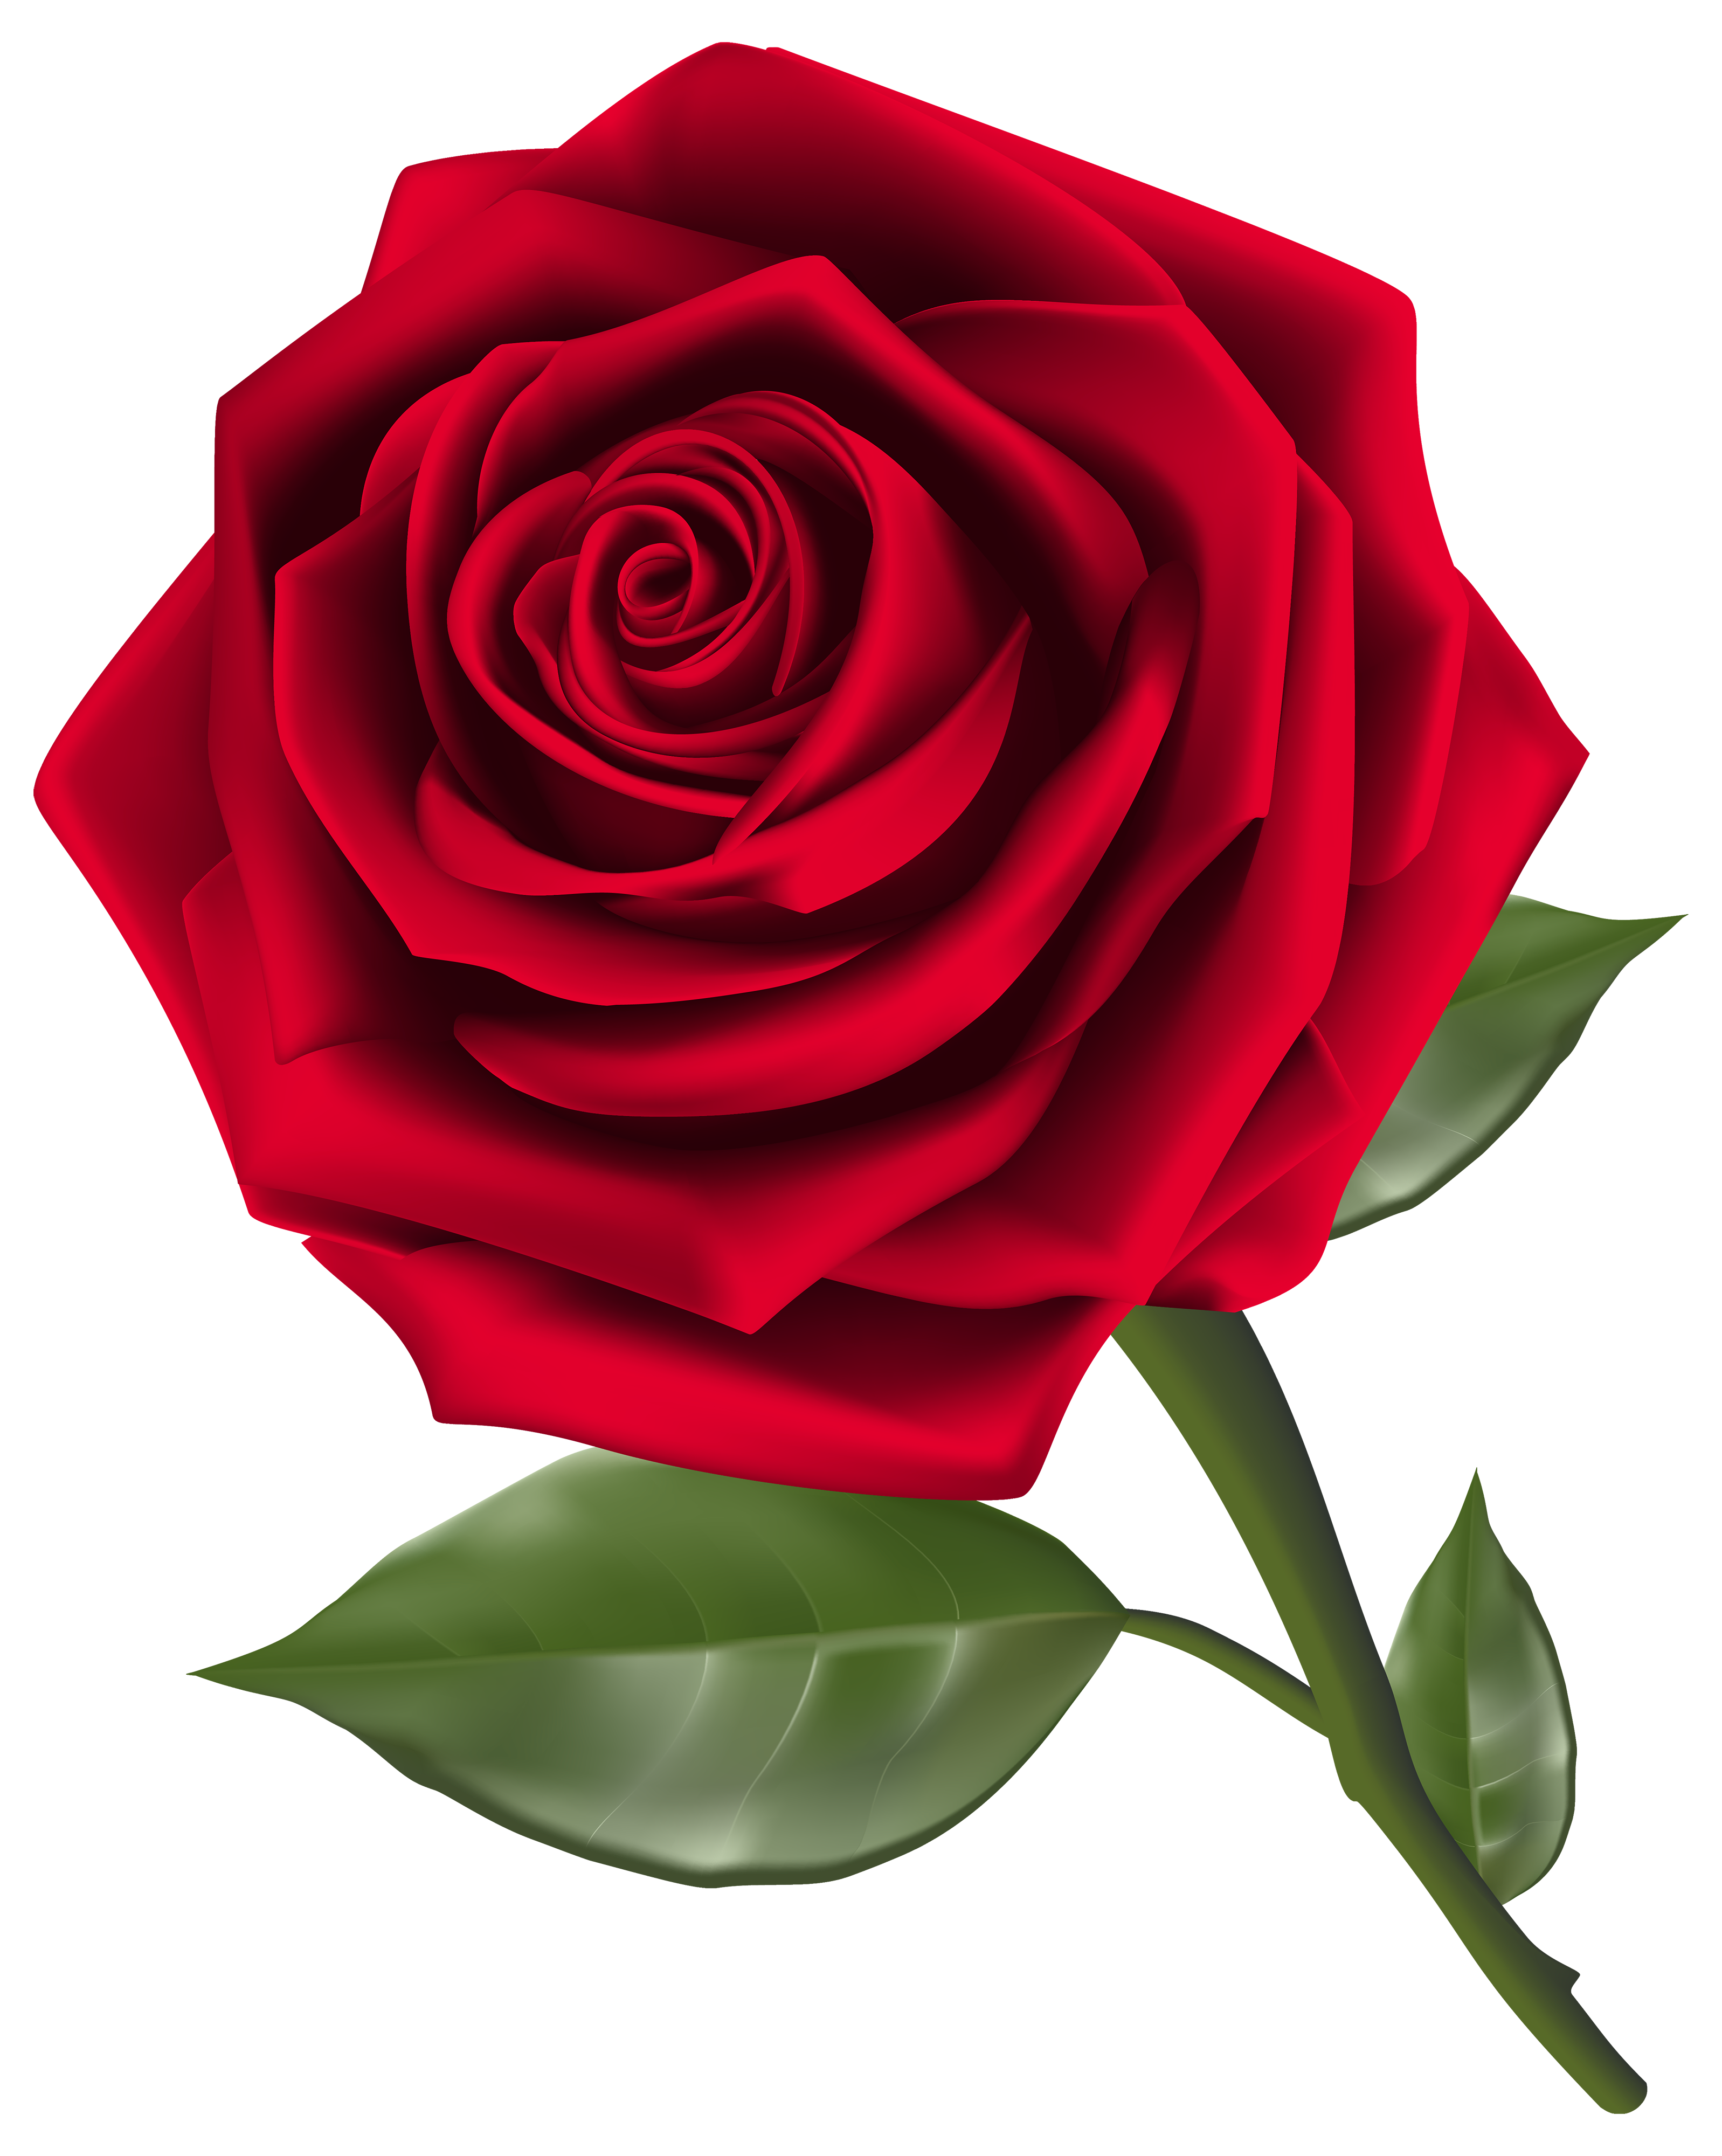 graphic free library Download free png transparent. A clipart rose